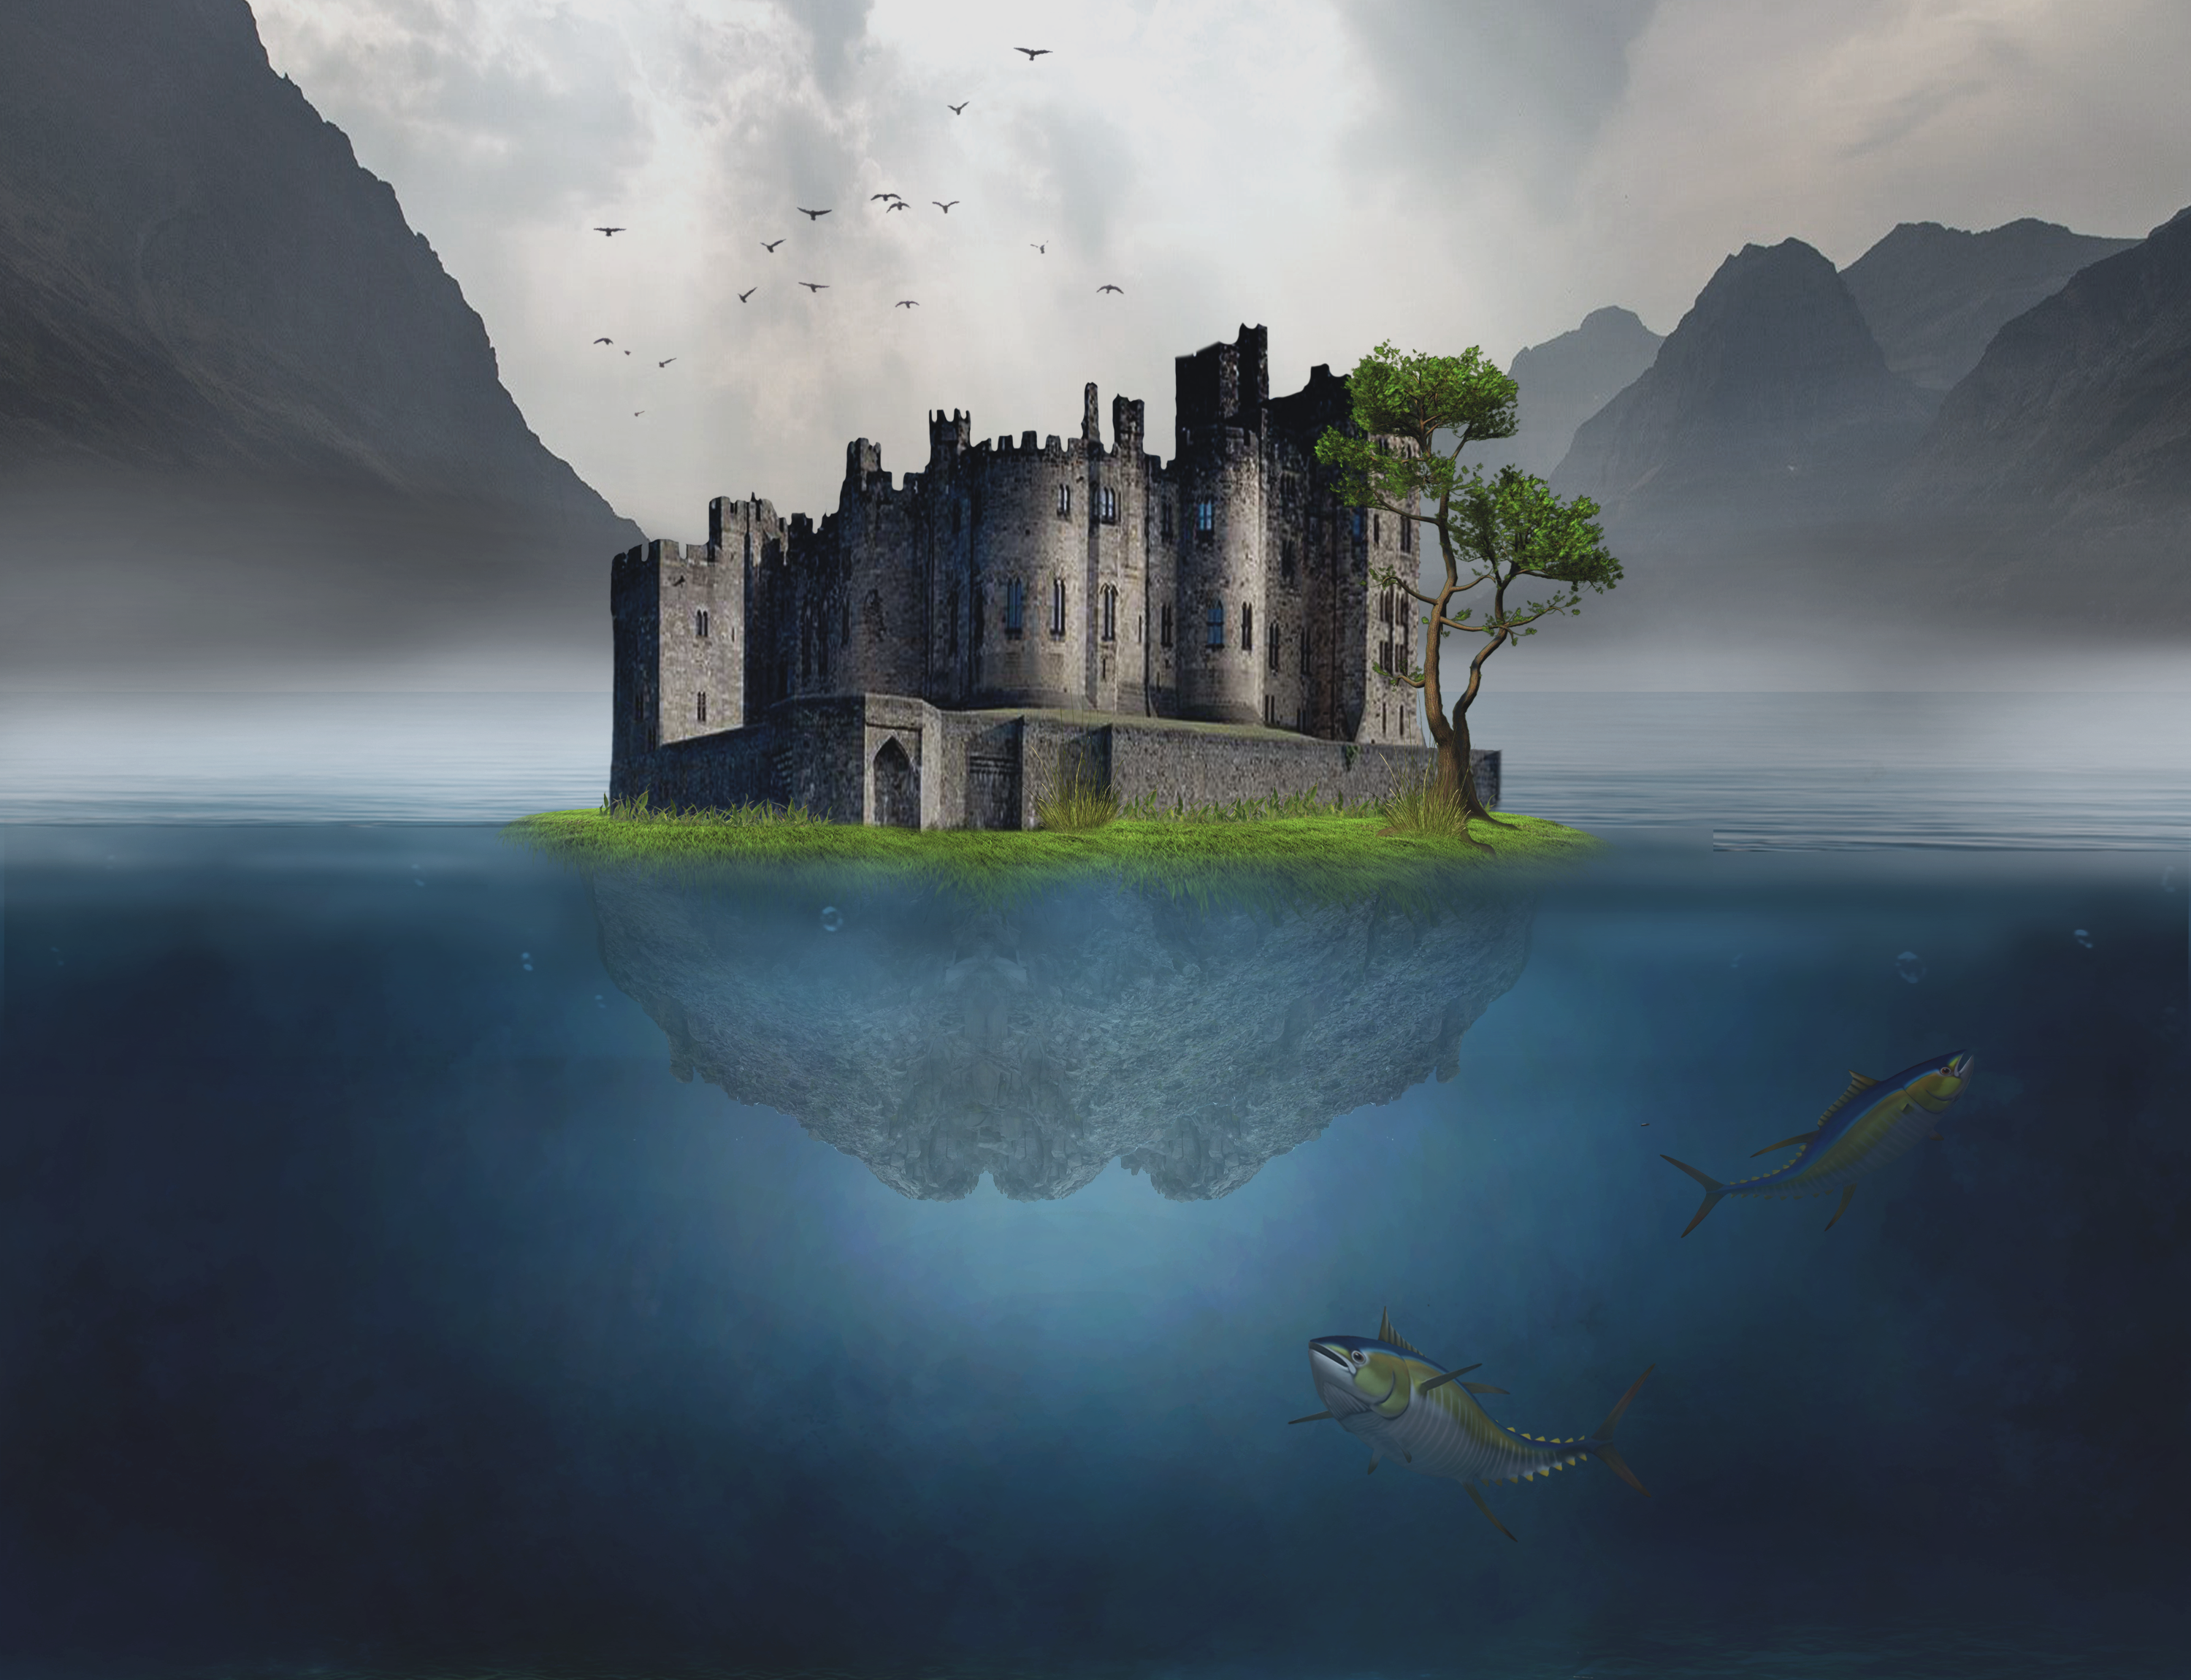 Island castle on the water